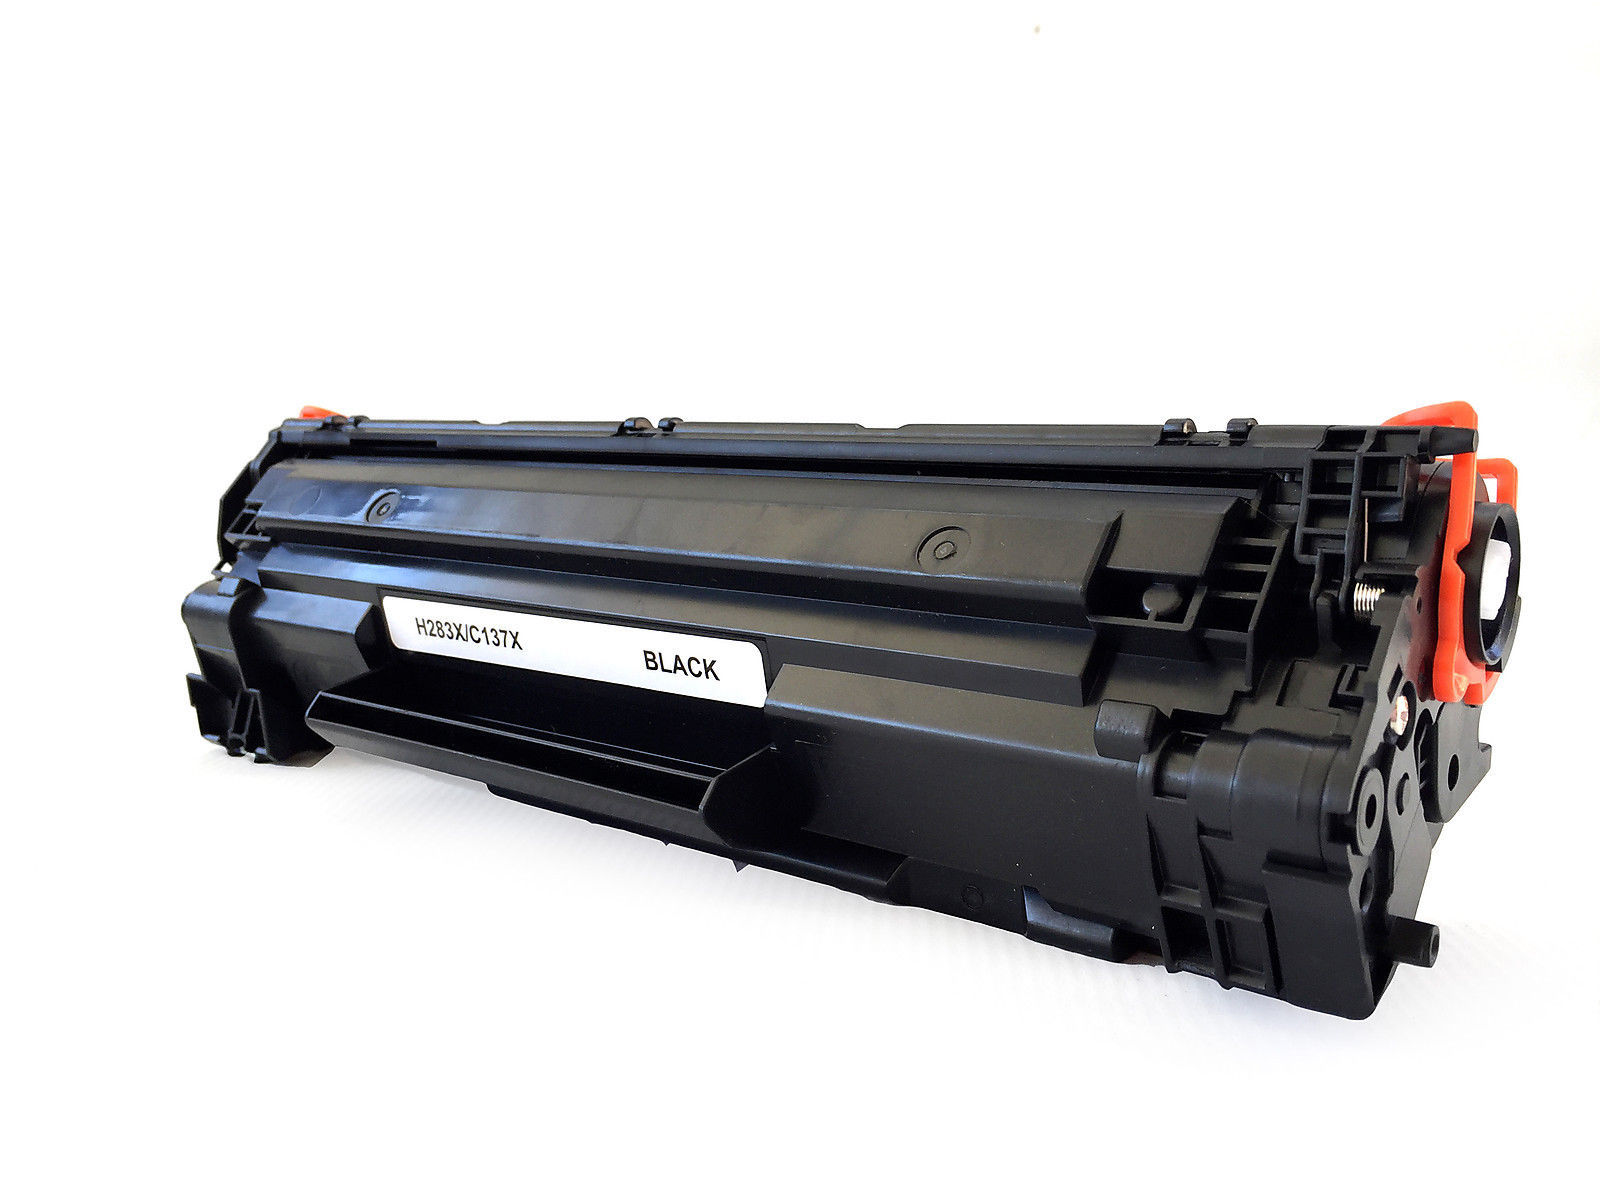 10 Compatible toner for HP LaserJet CF283X and 50 similar items